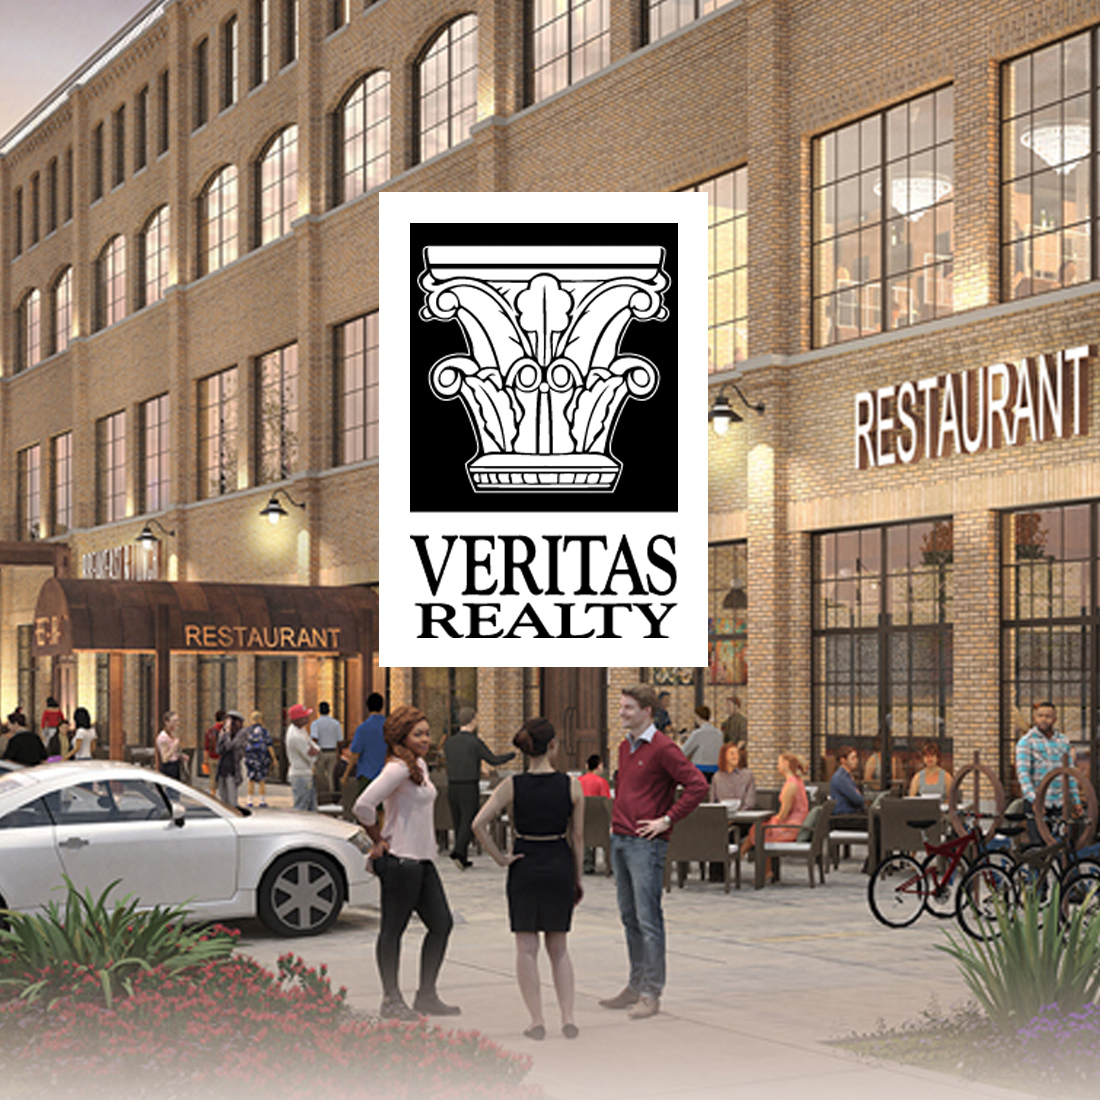 Veritas Realty - Branding and Website Design